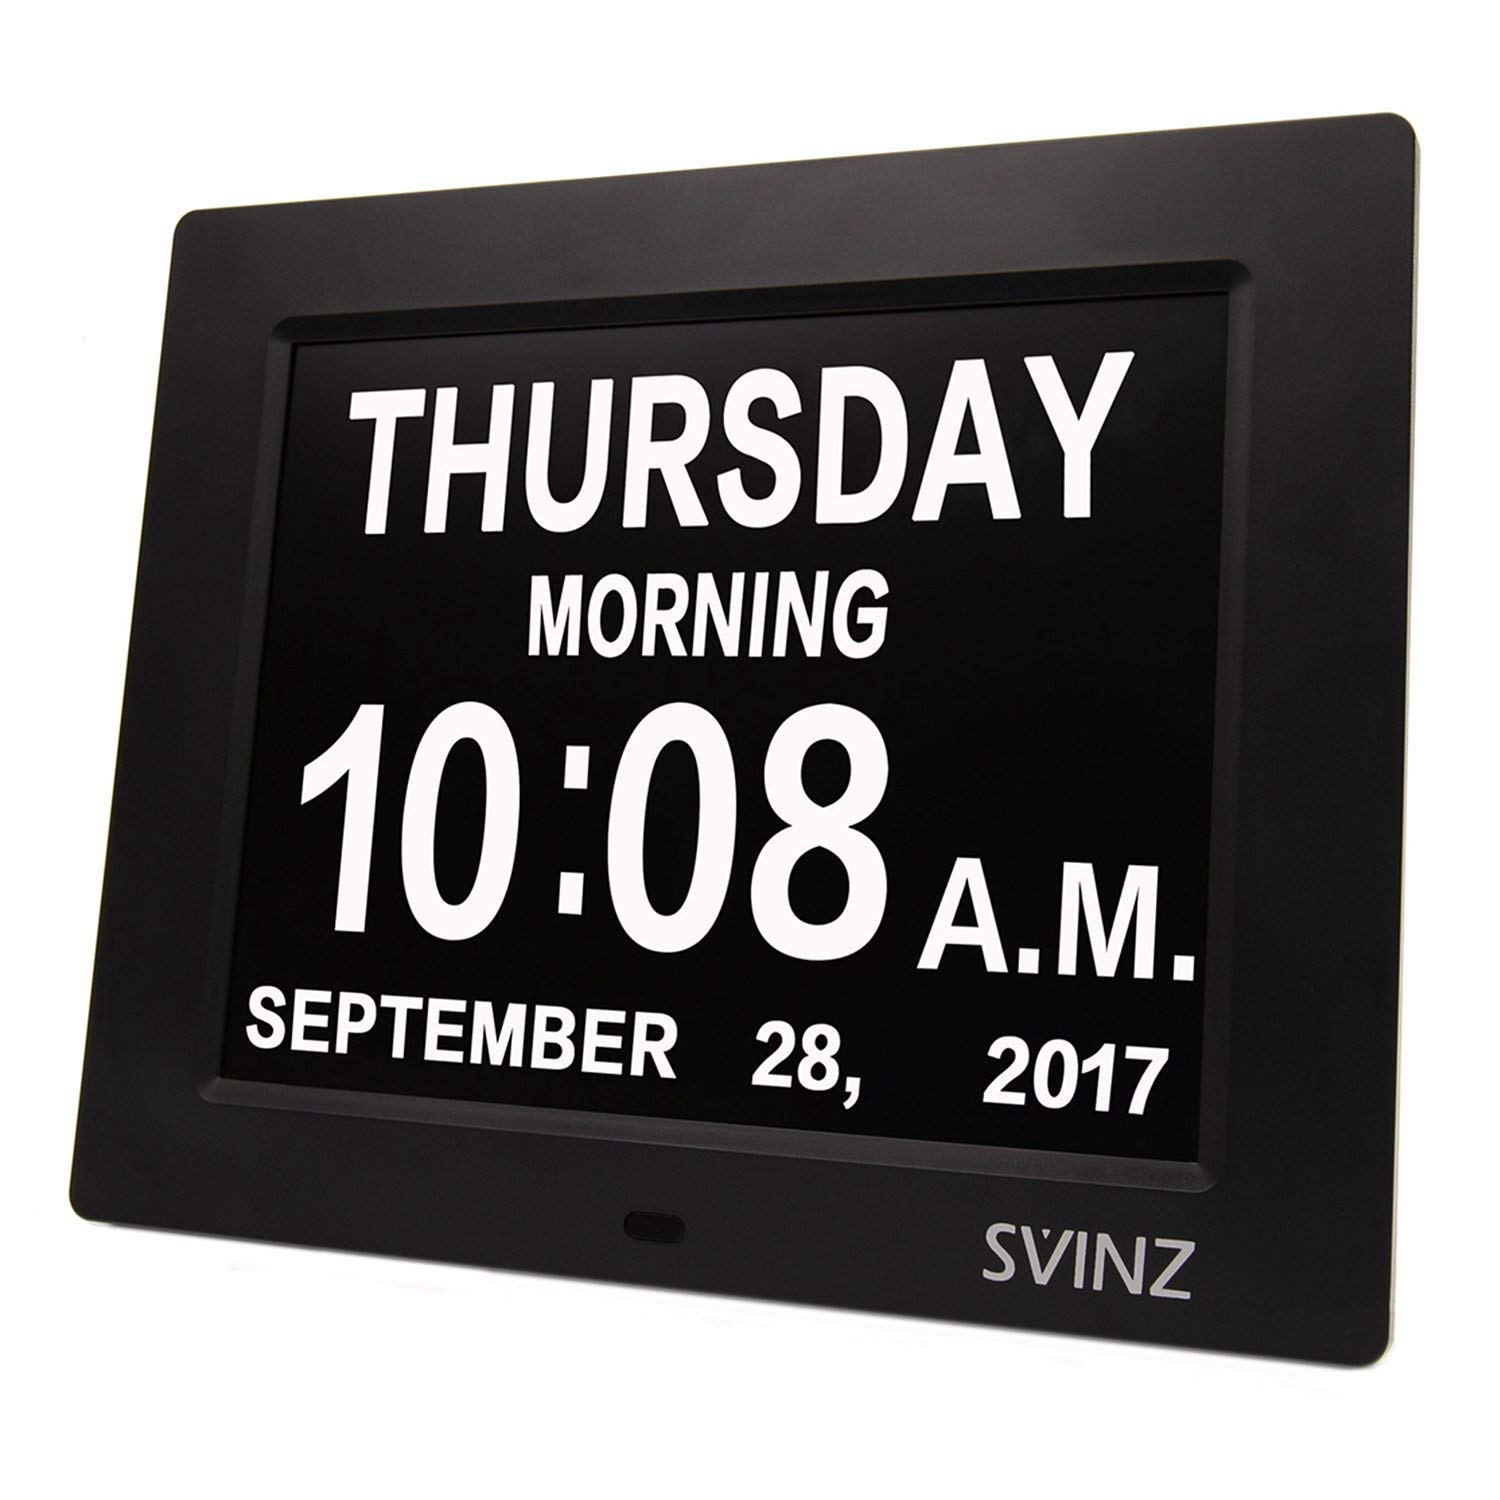 SVINZ 3 Alarms Dementia Clock, 2 Auto-Dim Options, Large Display Digital Calendar Day Clock for Vision Impaired, Elderly, Memory Loss, Black, SDC008W by SVINZ